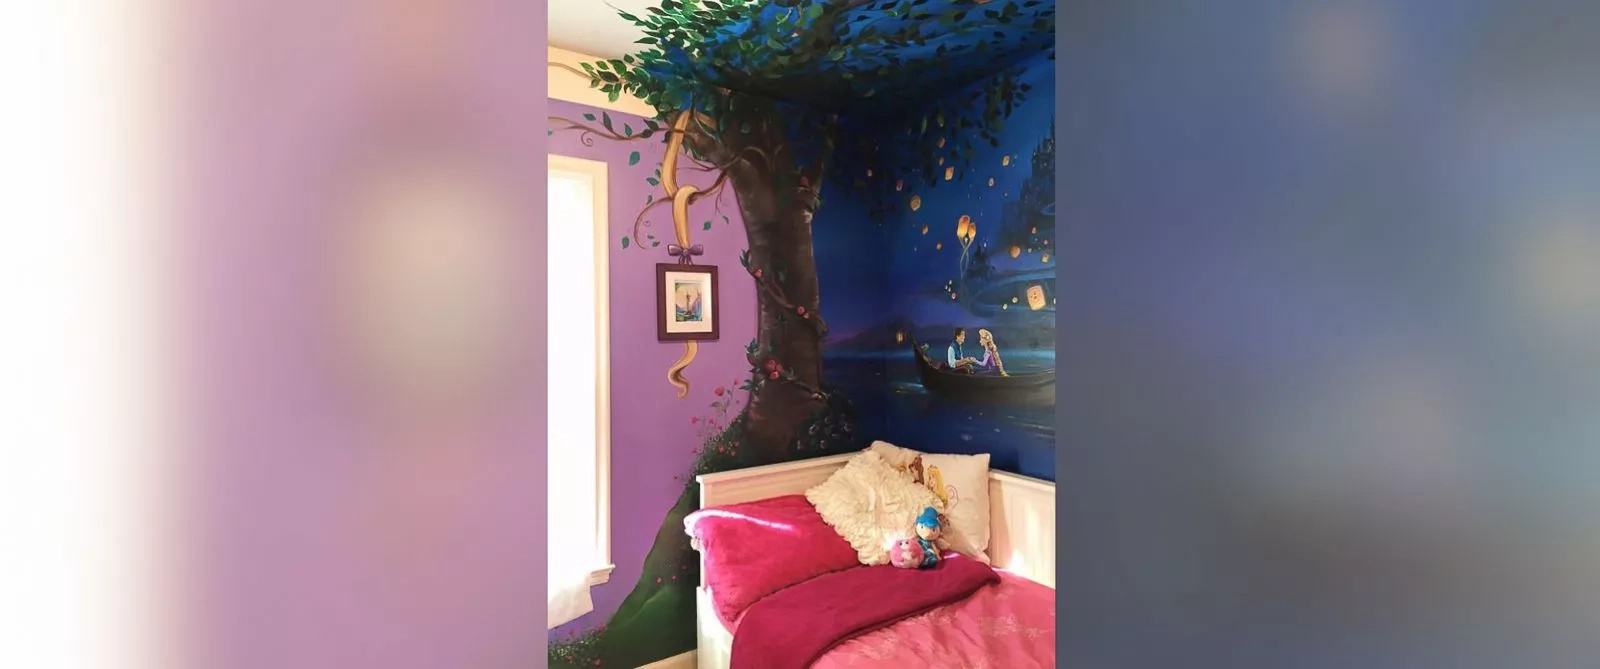 Mom Painting Mural Inspired By Pics On 8-Year-Old Daughter's Wall Is A True Beauty